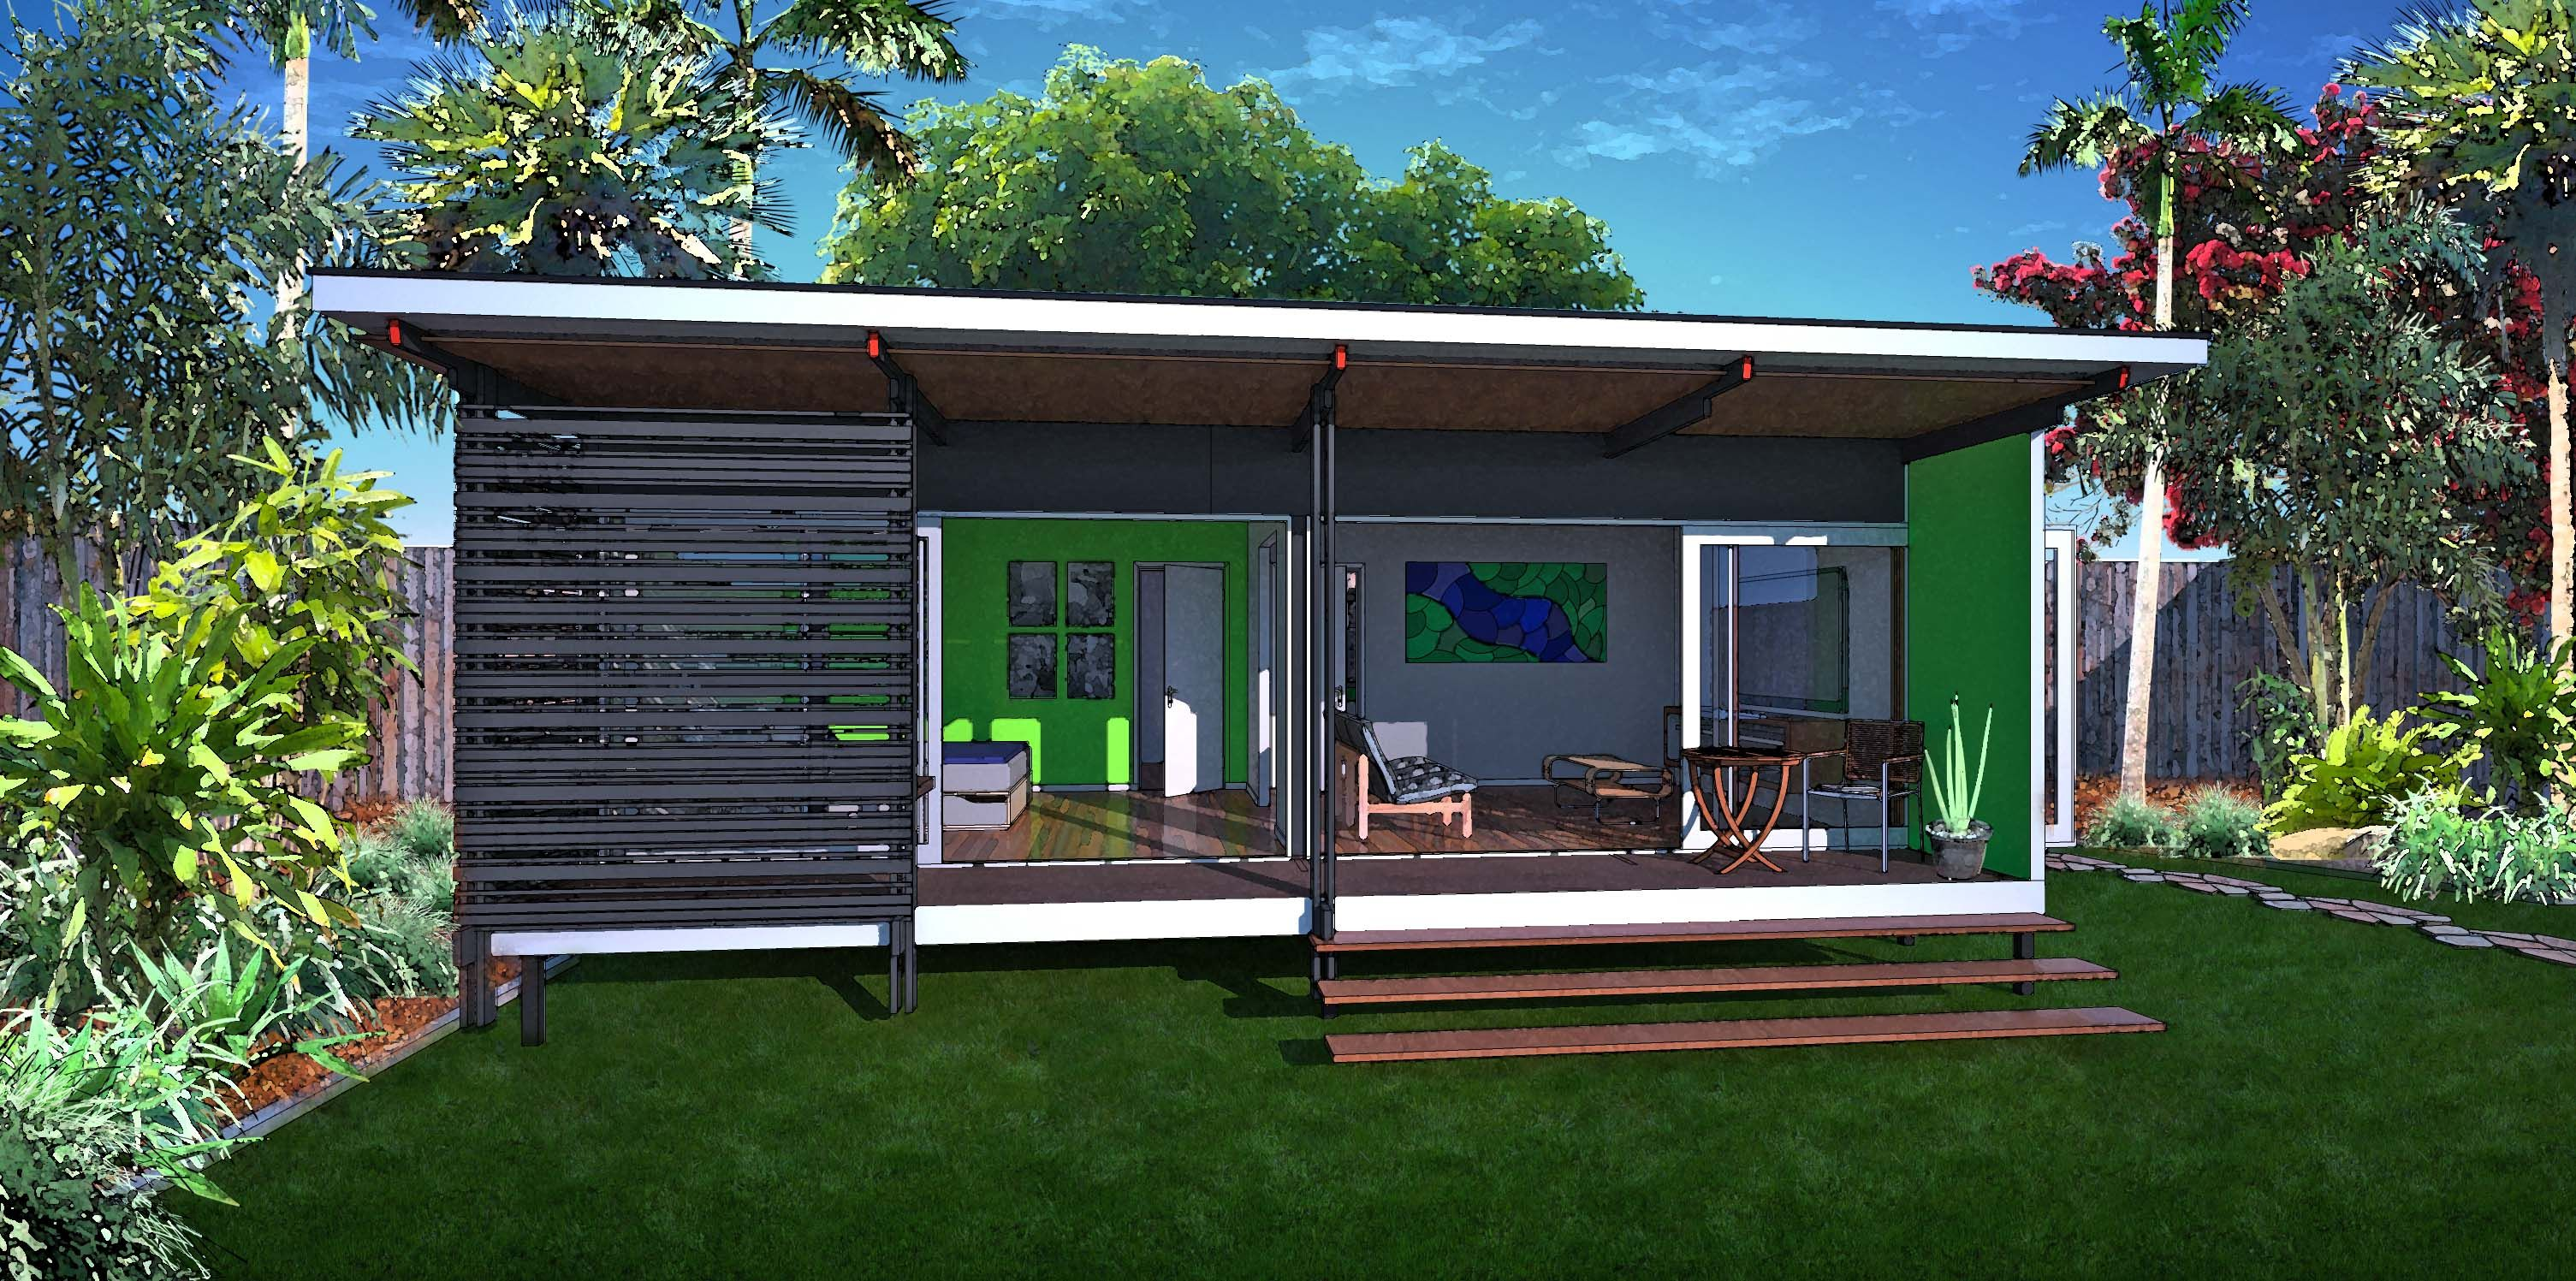 Granny flat designs google search house designs for Backyard cabins granny flats